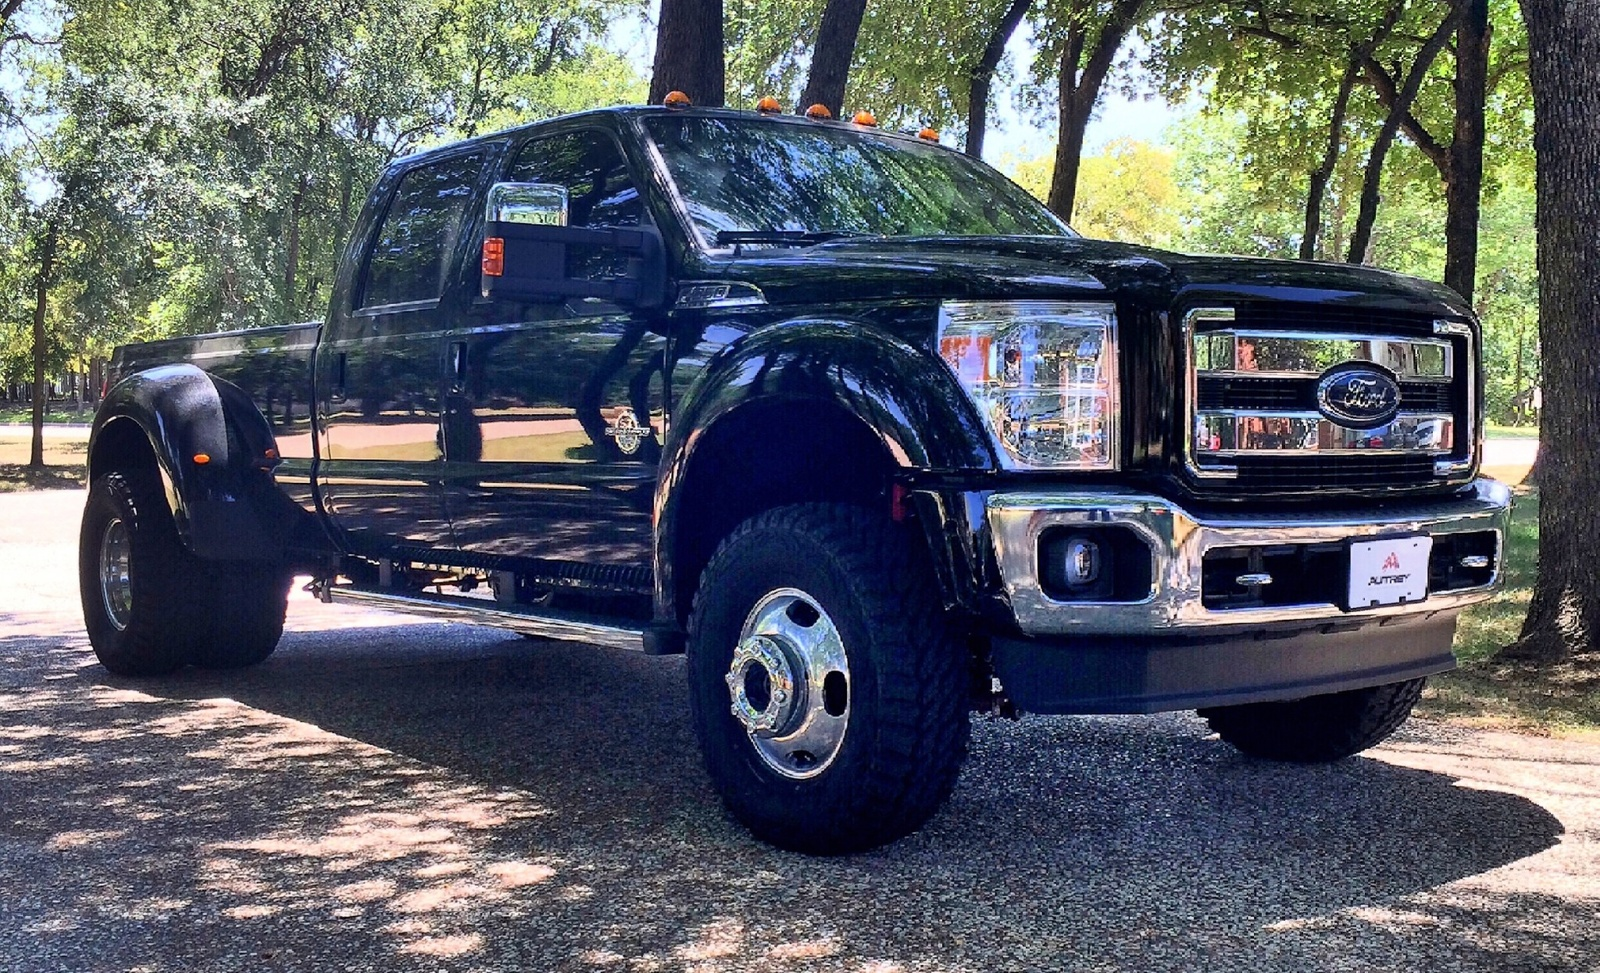 hight resolution of will a bumper and grill from a ford f 350 fit on a 1999 f 350 i had a custom air dam aftermarket put on my dually that can t be replaced